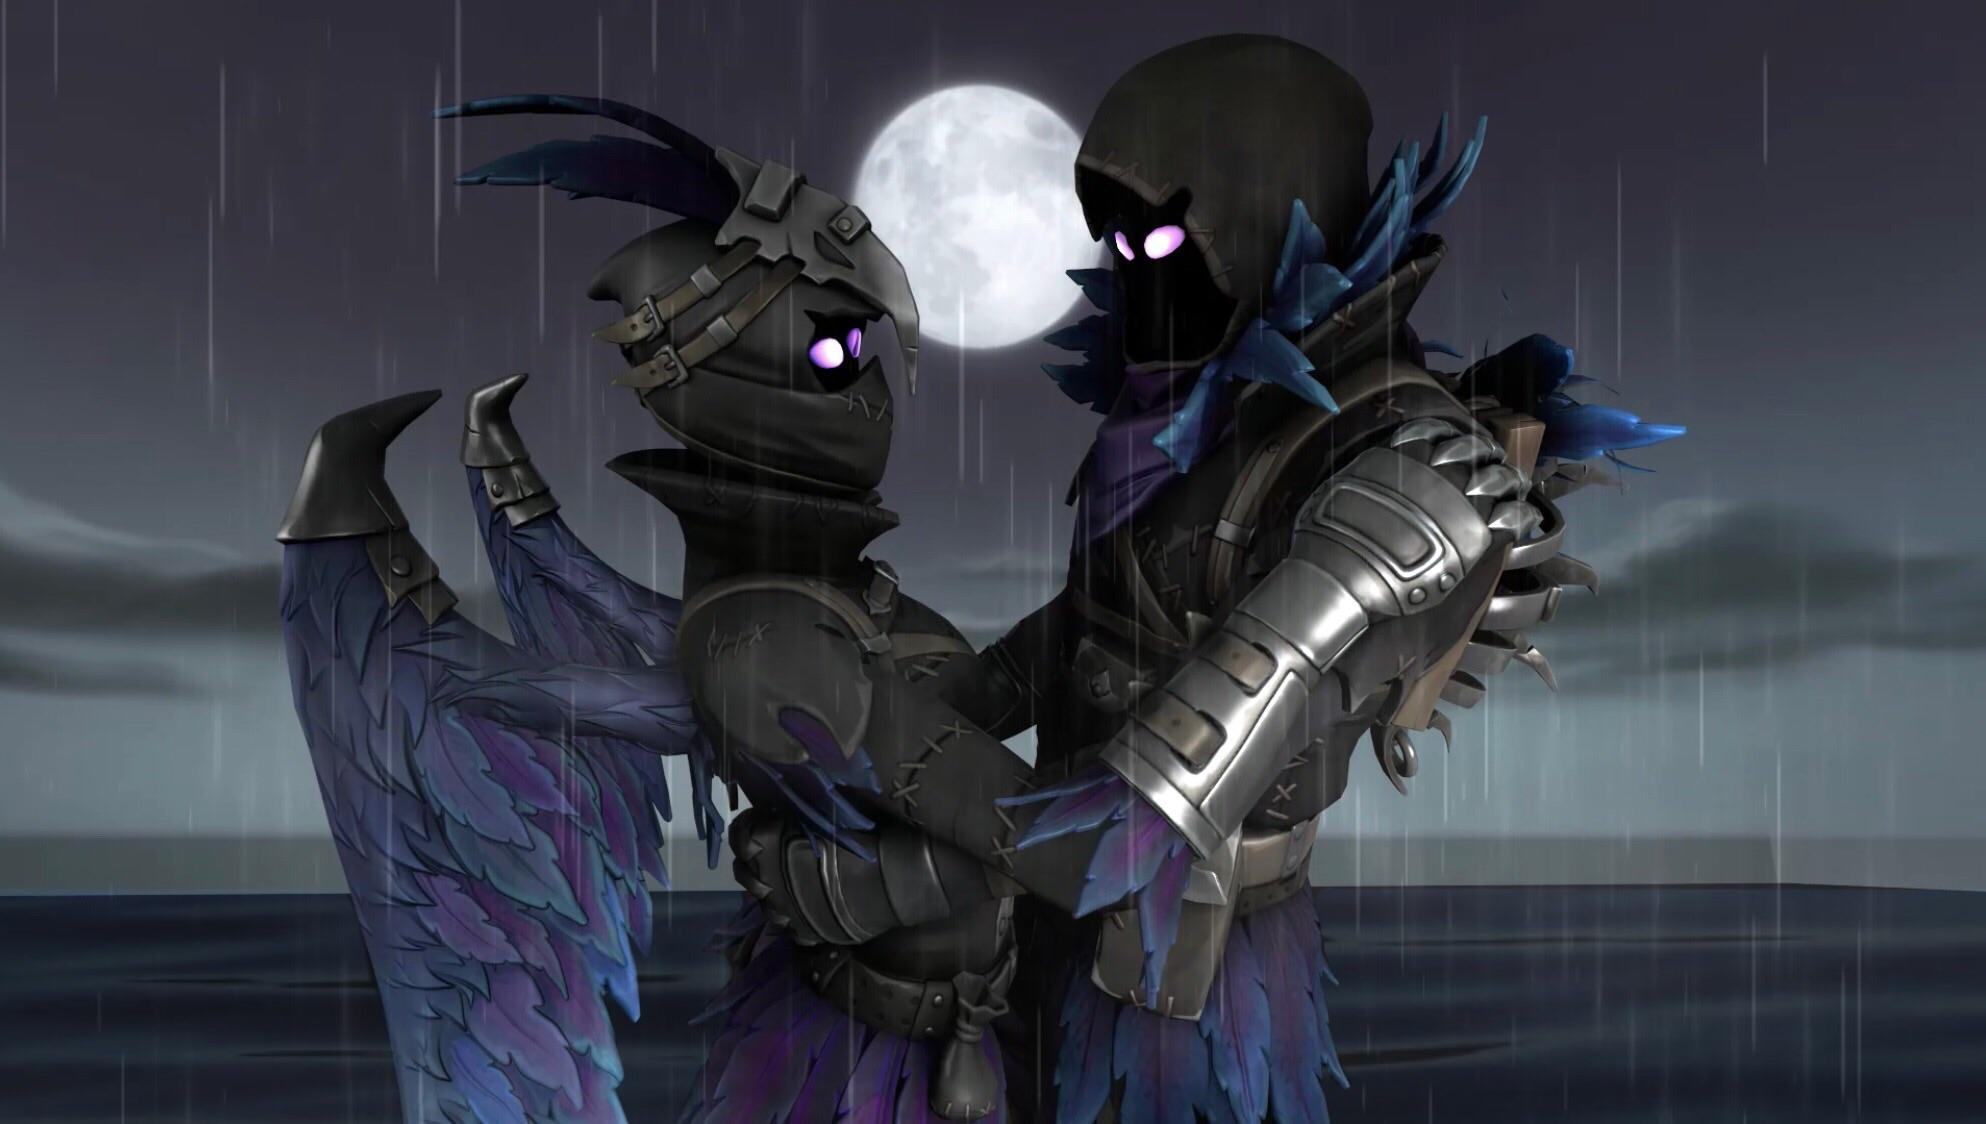 Wallpapers I made for myself of Ravage and Raven